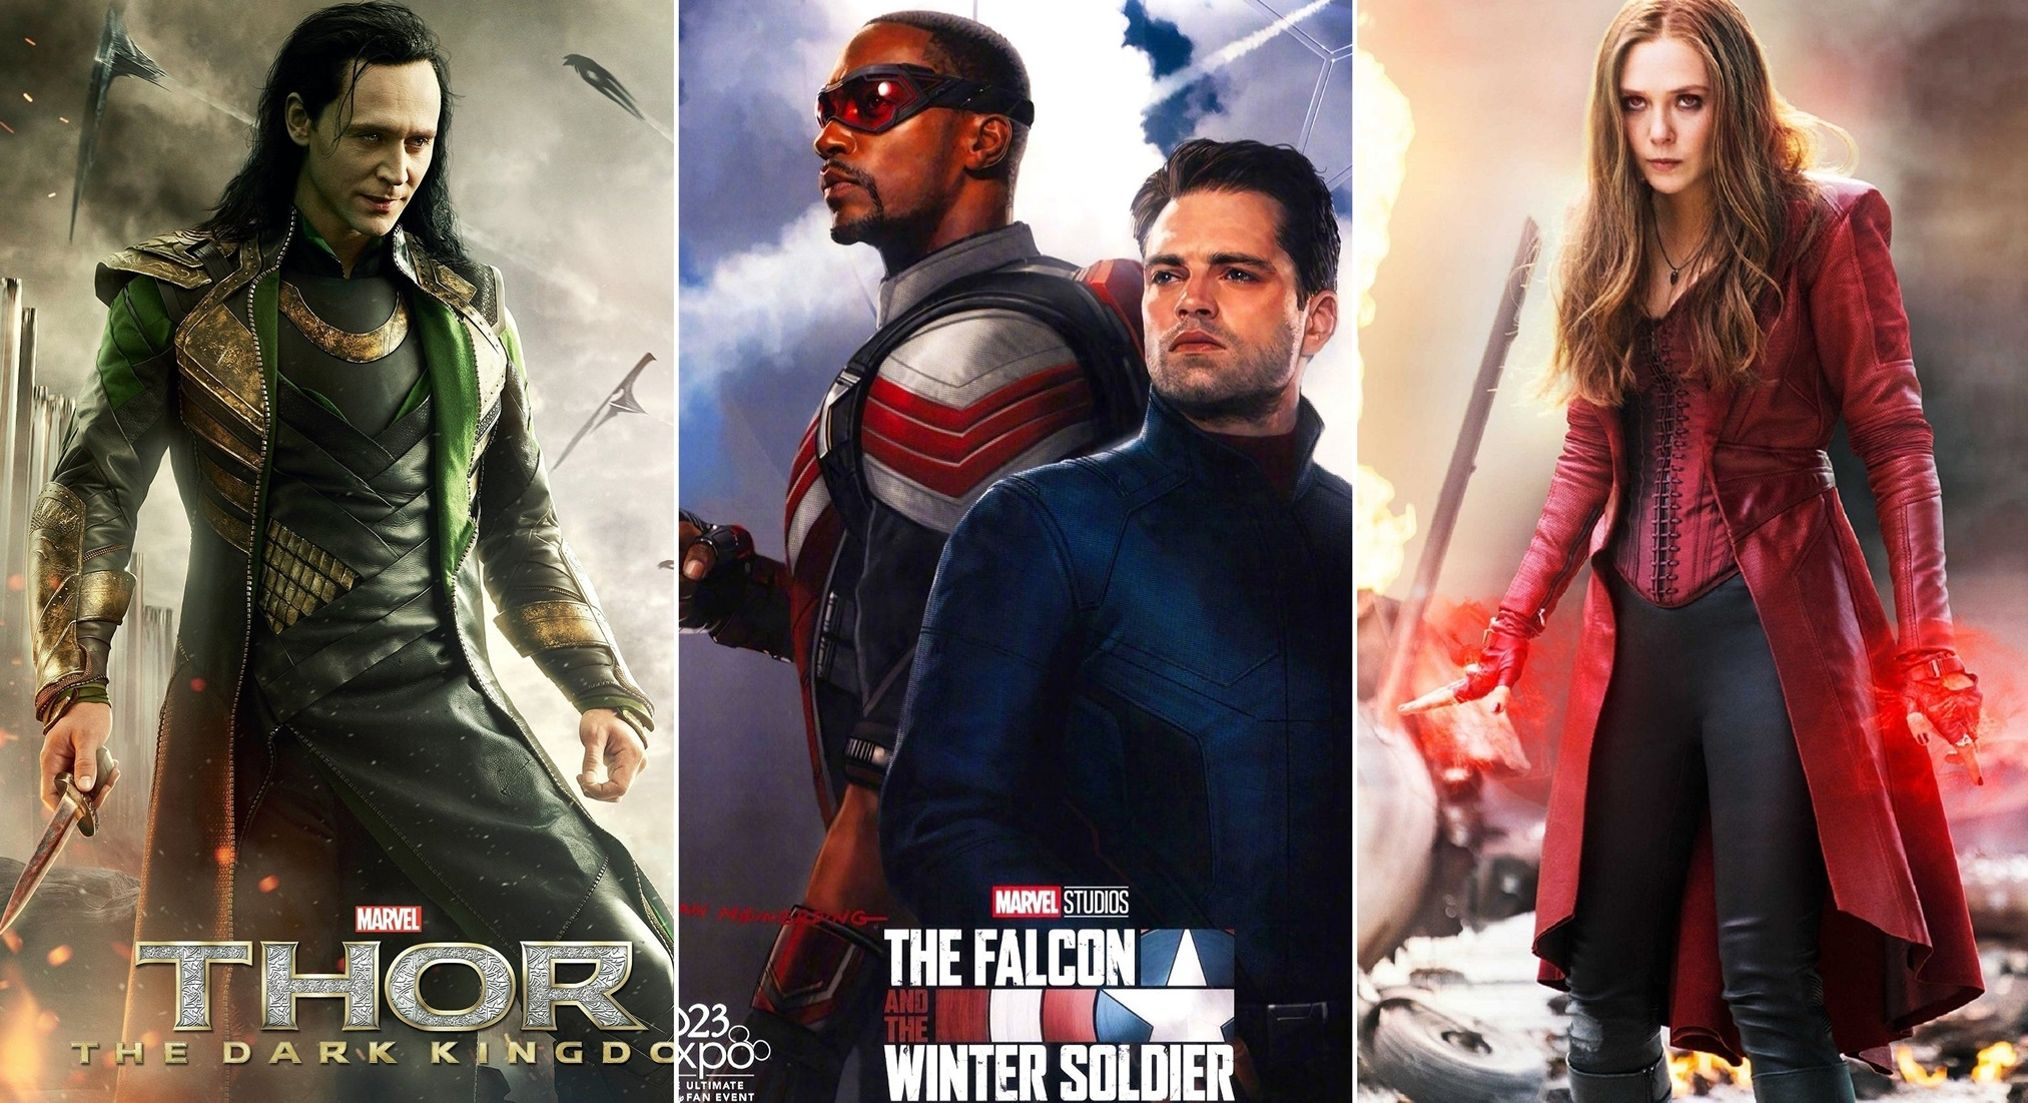 Marvel Studios adelanta el primer vistazo de la series 'Falcon and the Winter Soldier', 'Wandavision' y 'Loki'